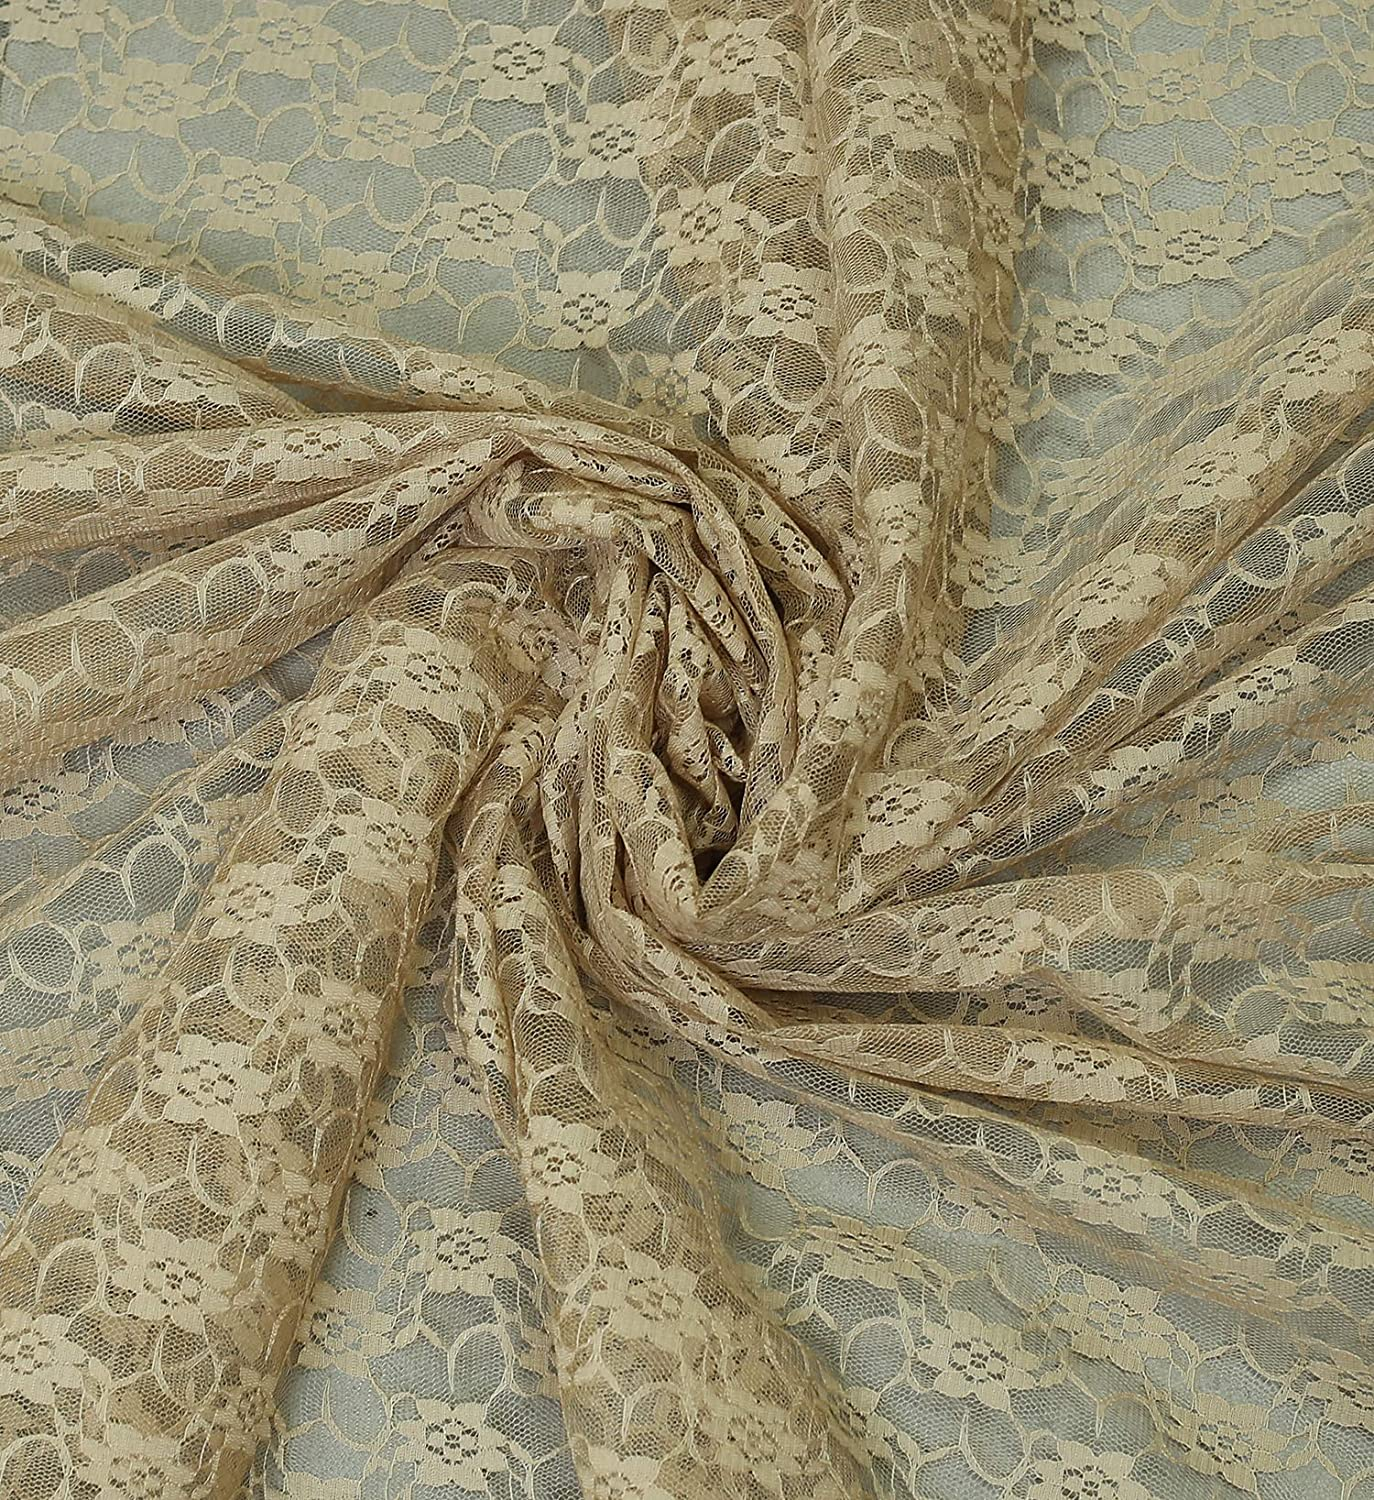 """mds Pack of 10 Yard Bridal Solid Raschel Lace Fabric, Vintage Lace Fabric Bolt for Wedding Dress,Fashion, Crafts, Decorations Lace Trim Fabric 55"""" Width- Champagne Gold"""